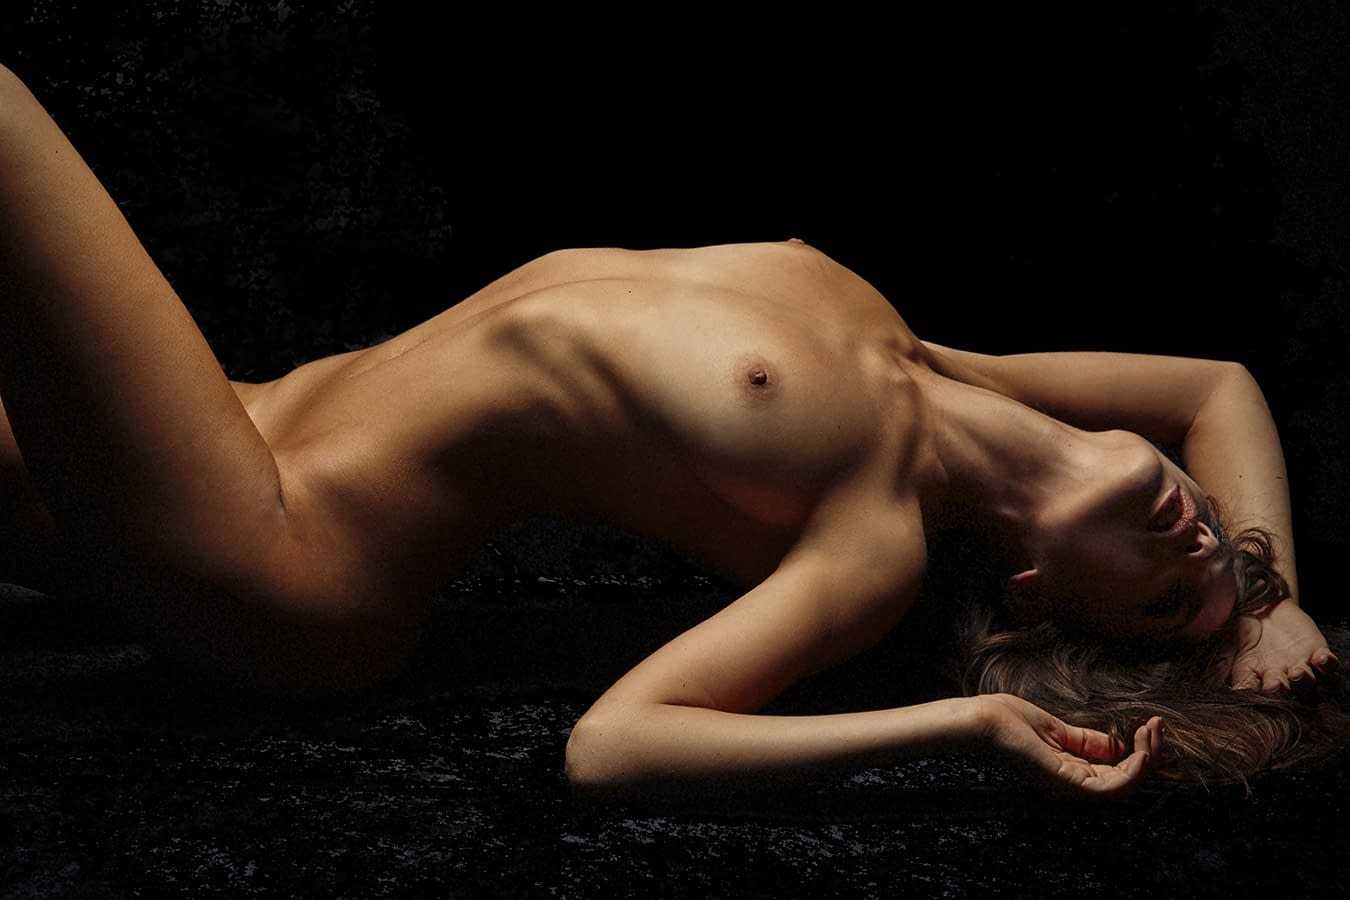 NUDE 26 PHOTO BY ENRIC GALCERAN